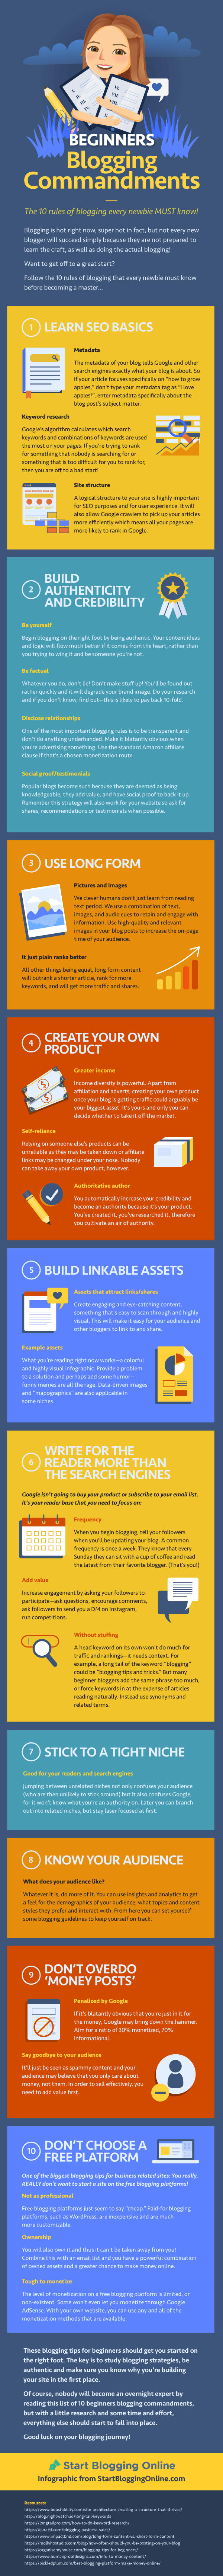 beginners-blogging-commandments-infographic 10 Rules of Blogging Every Newbie MUST Know!